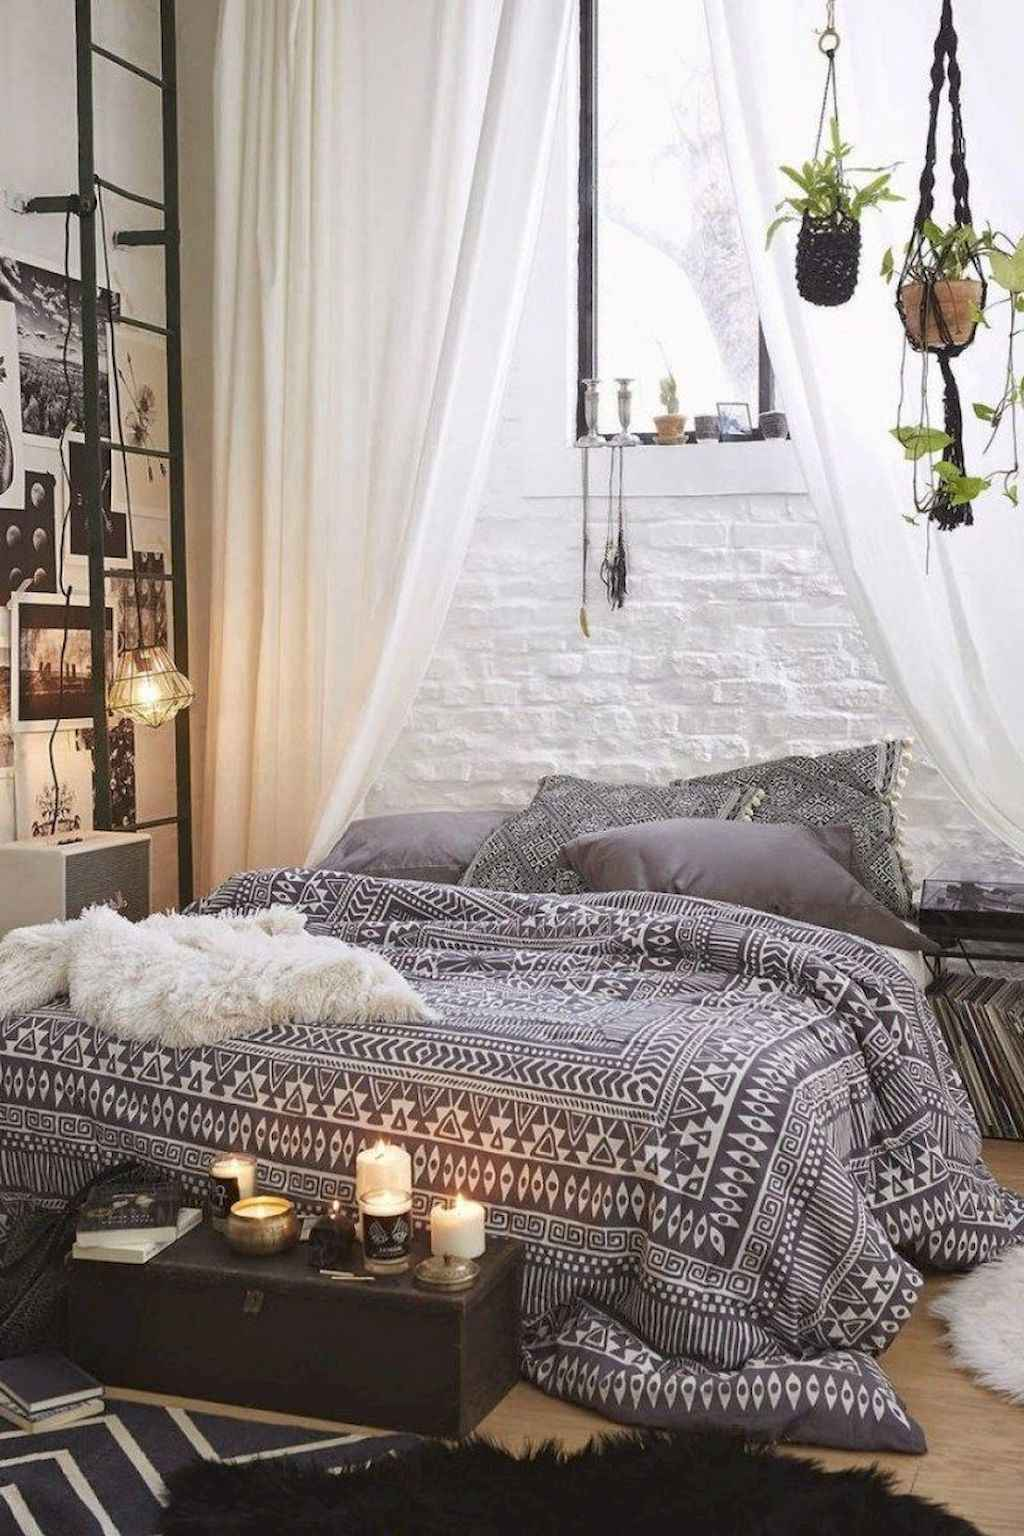 Clever college apartment decorating ideas on a budget (14)